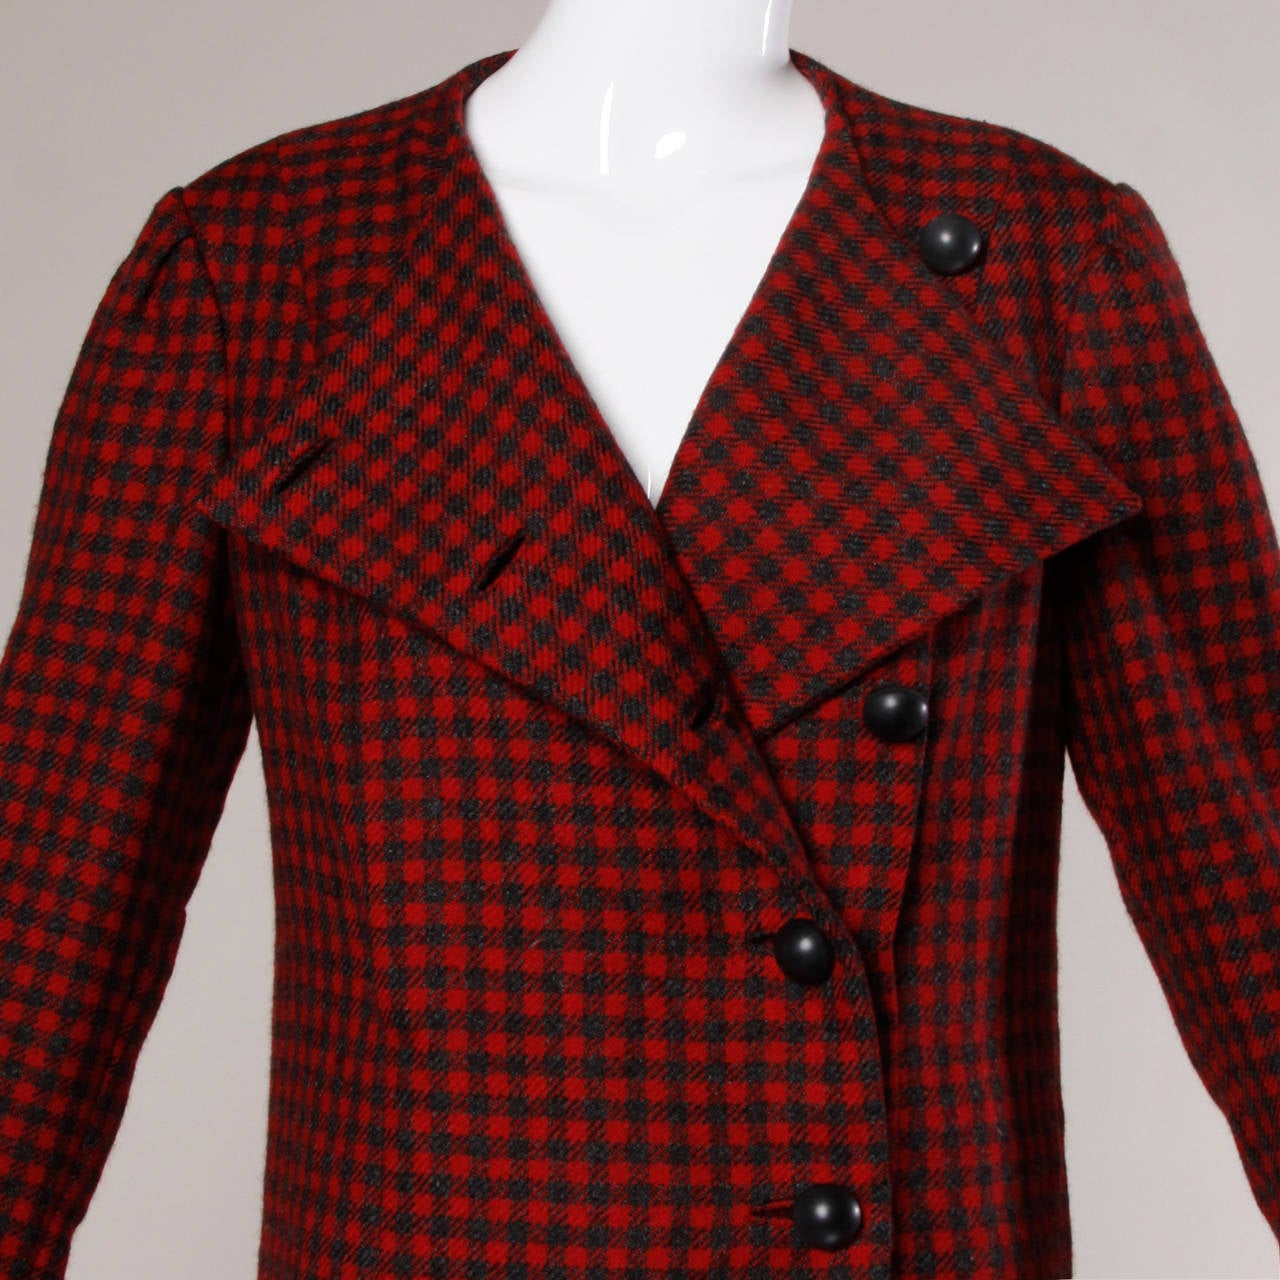 Red and charcoal gray wool houndstooth jacket by Pauline Trigere. 